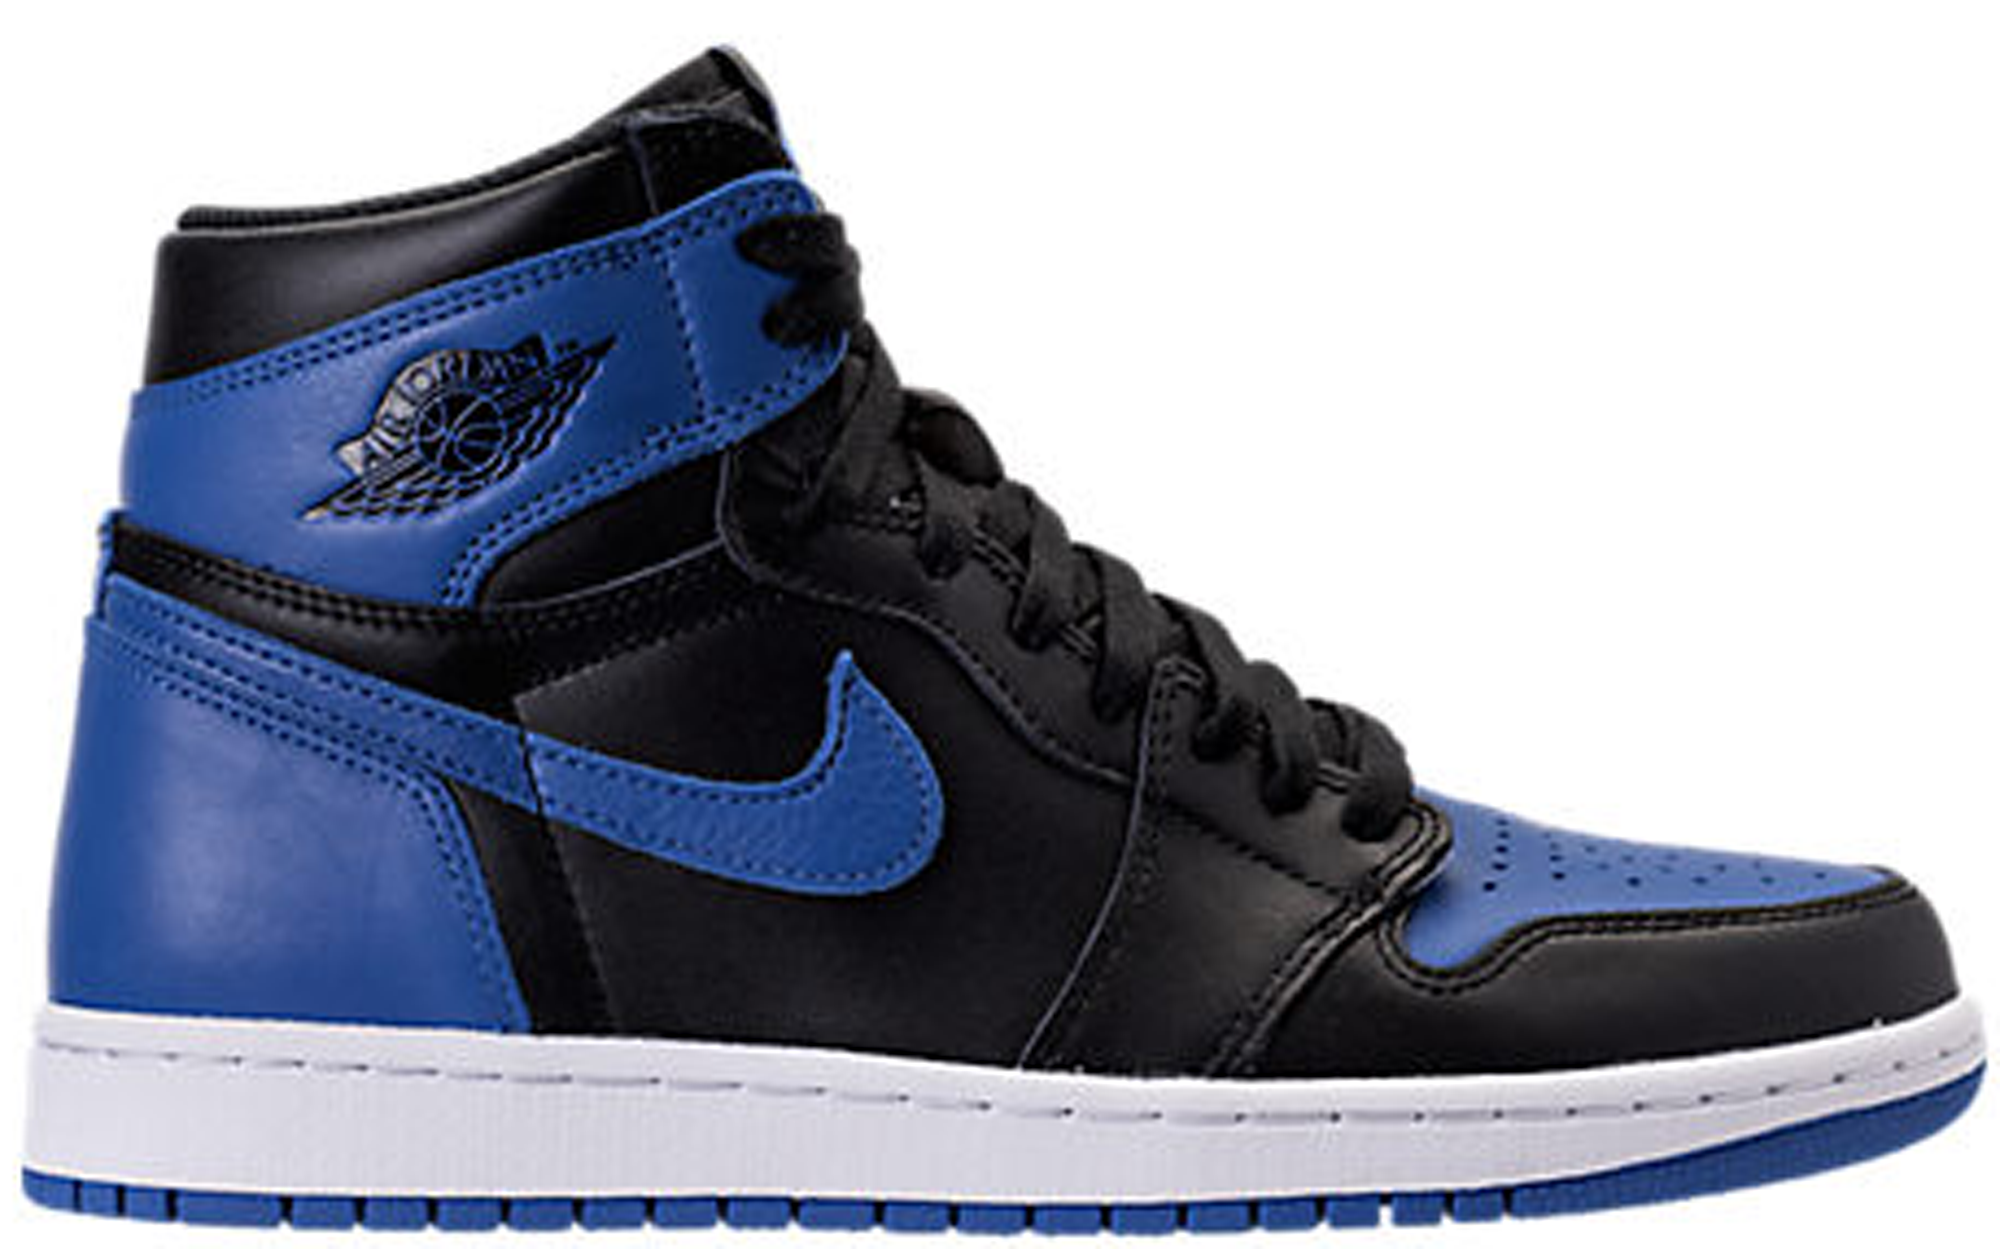 afa5fa94d87 Air Jordan 1 Retro High OG 'Royal' 2017 - Sneakest